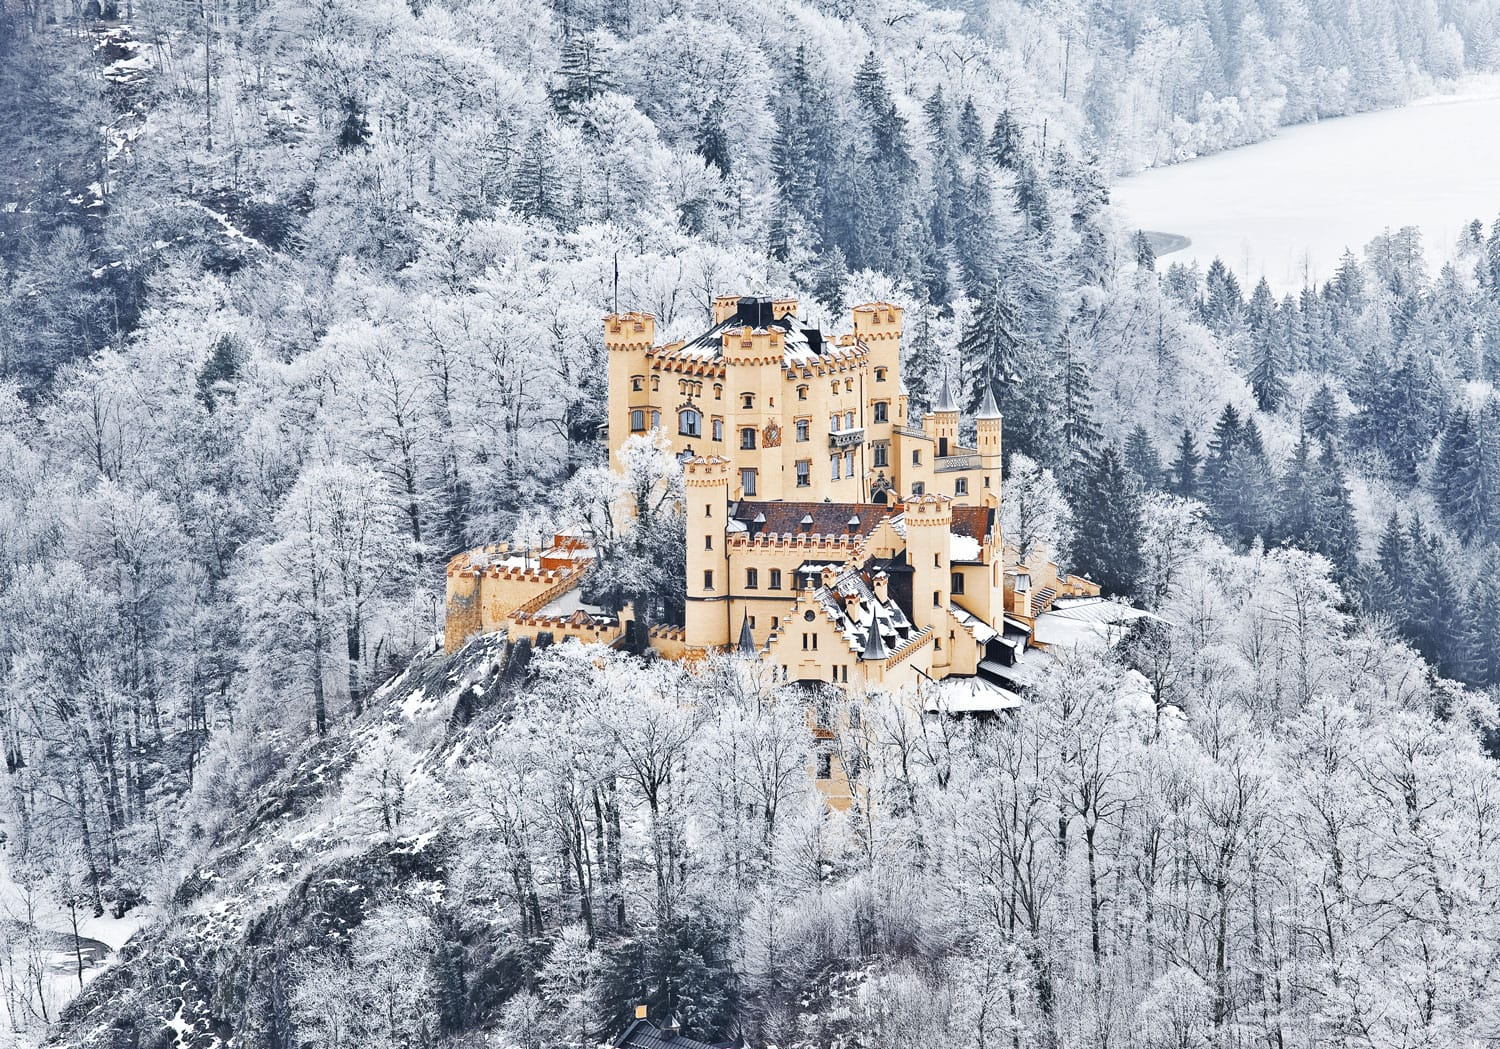 he castle of Hohenschwangau in Bavaria, Germany.